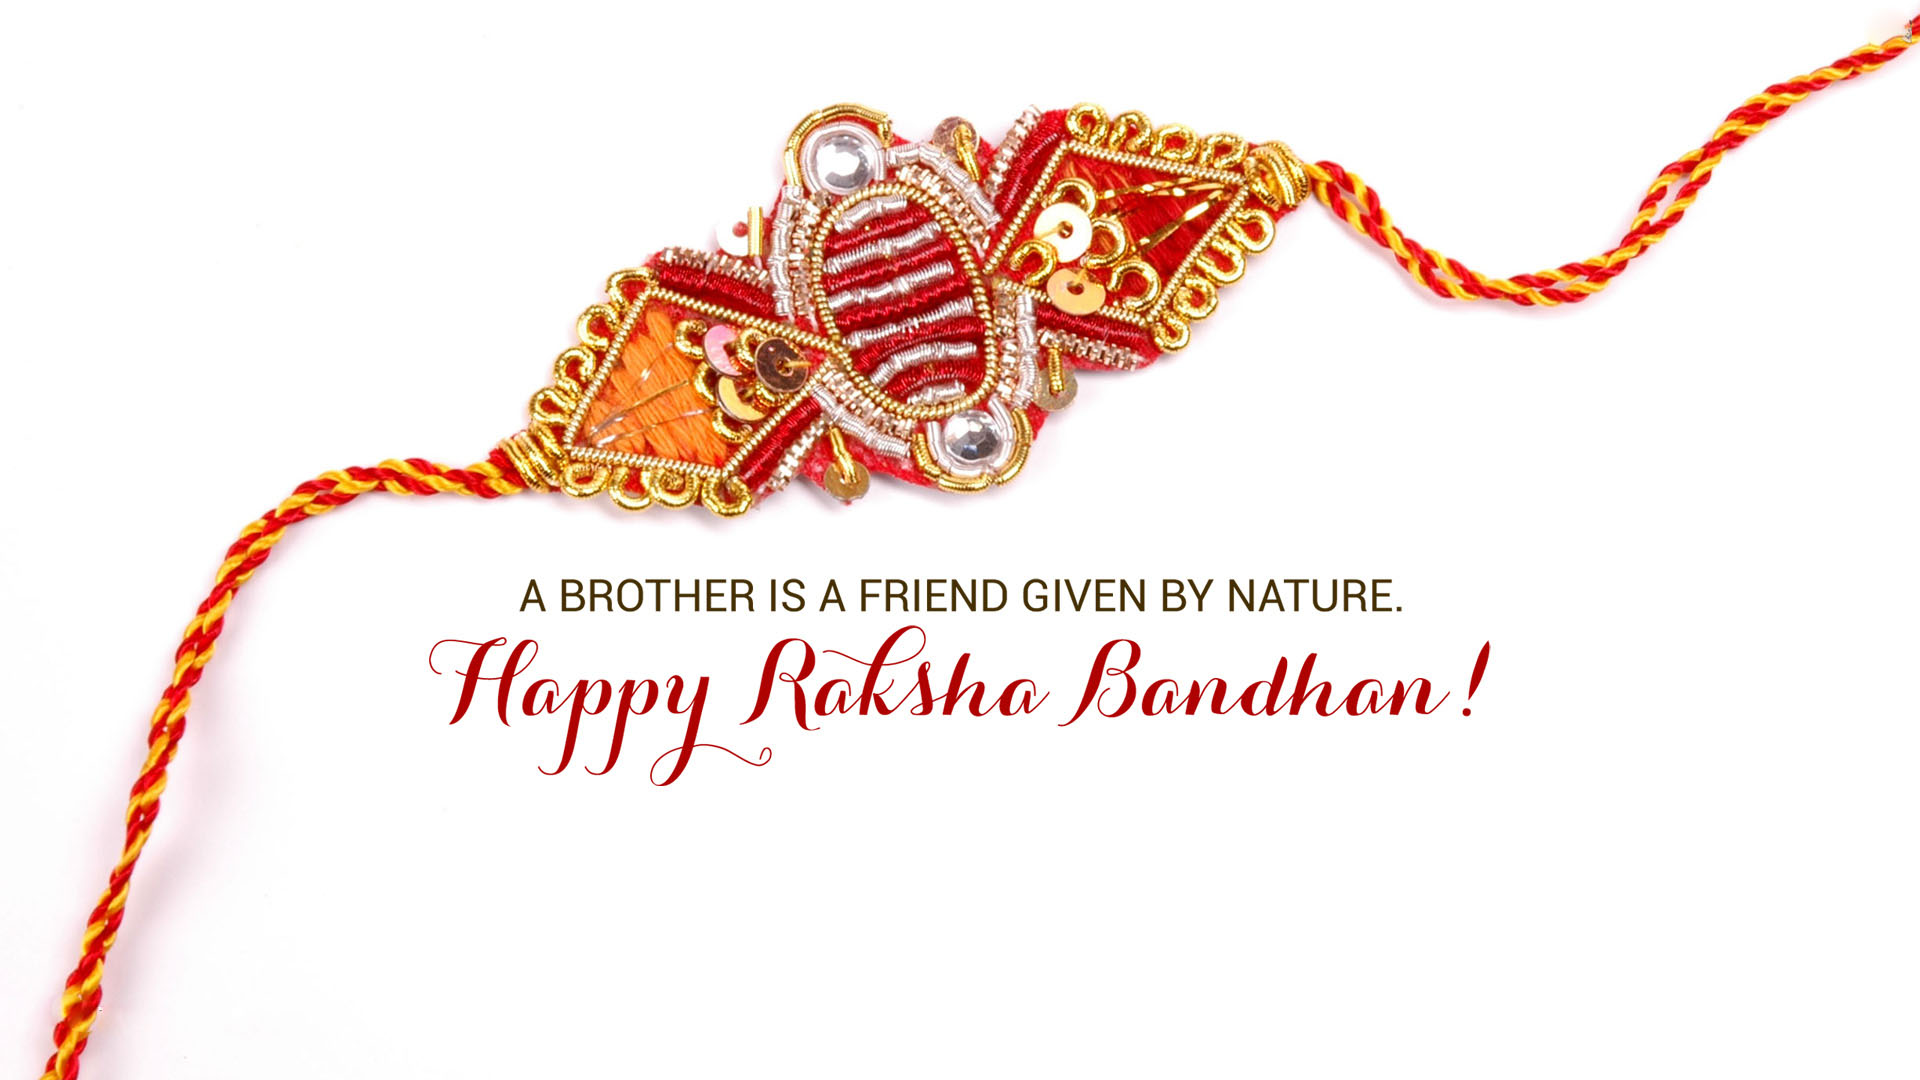 A brother is a friend given by nature happy raksha bandhan card kristyandbryce Image collections